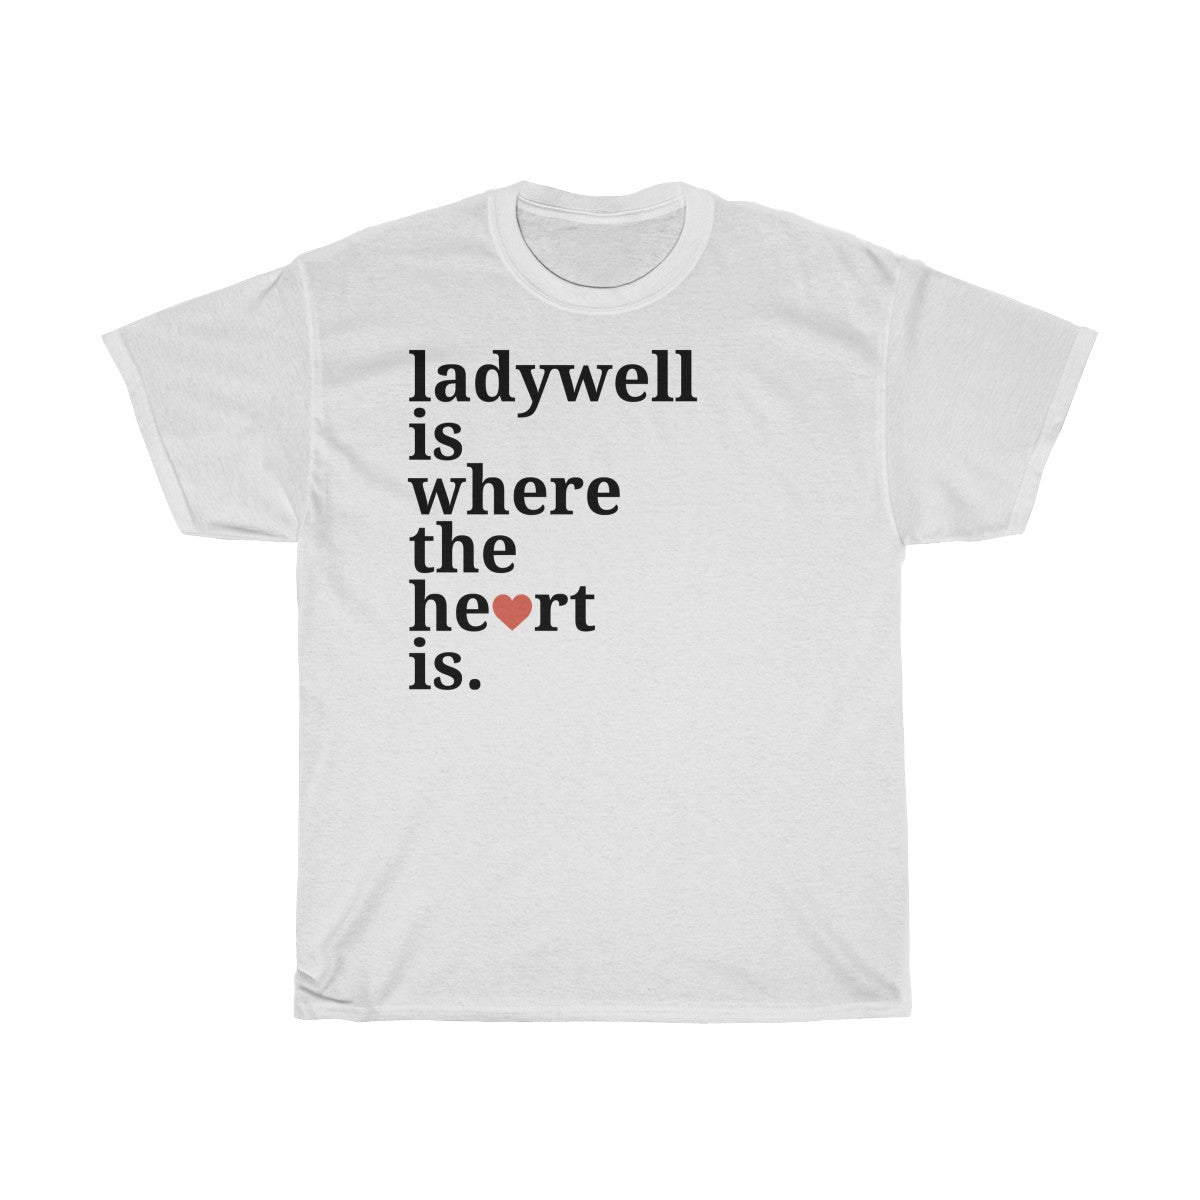 Ladywell Is Where The Heart Is T-Shirt